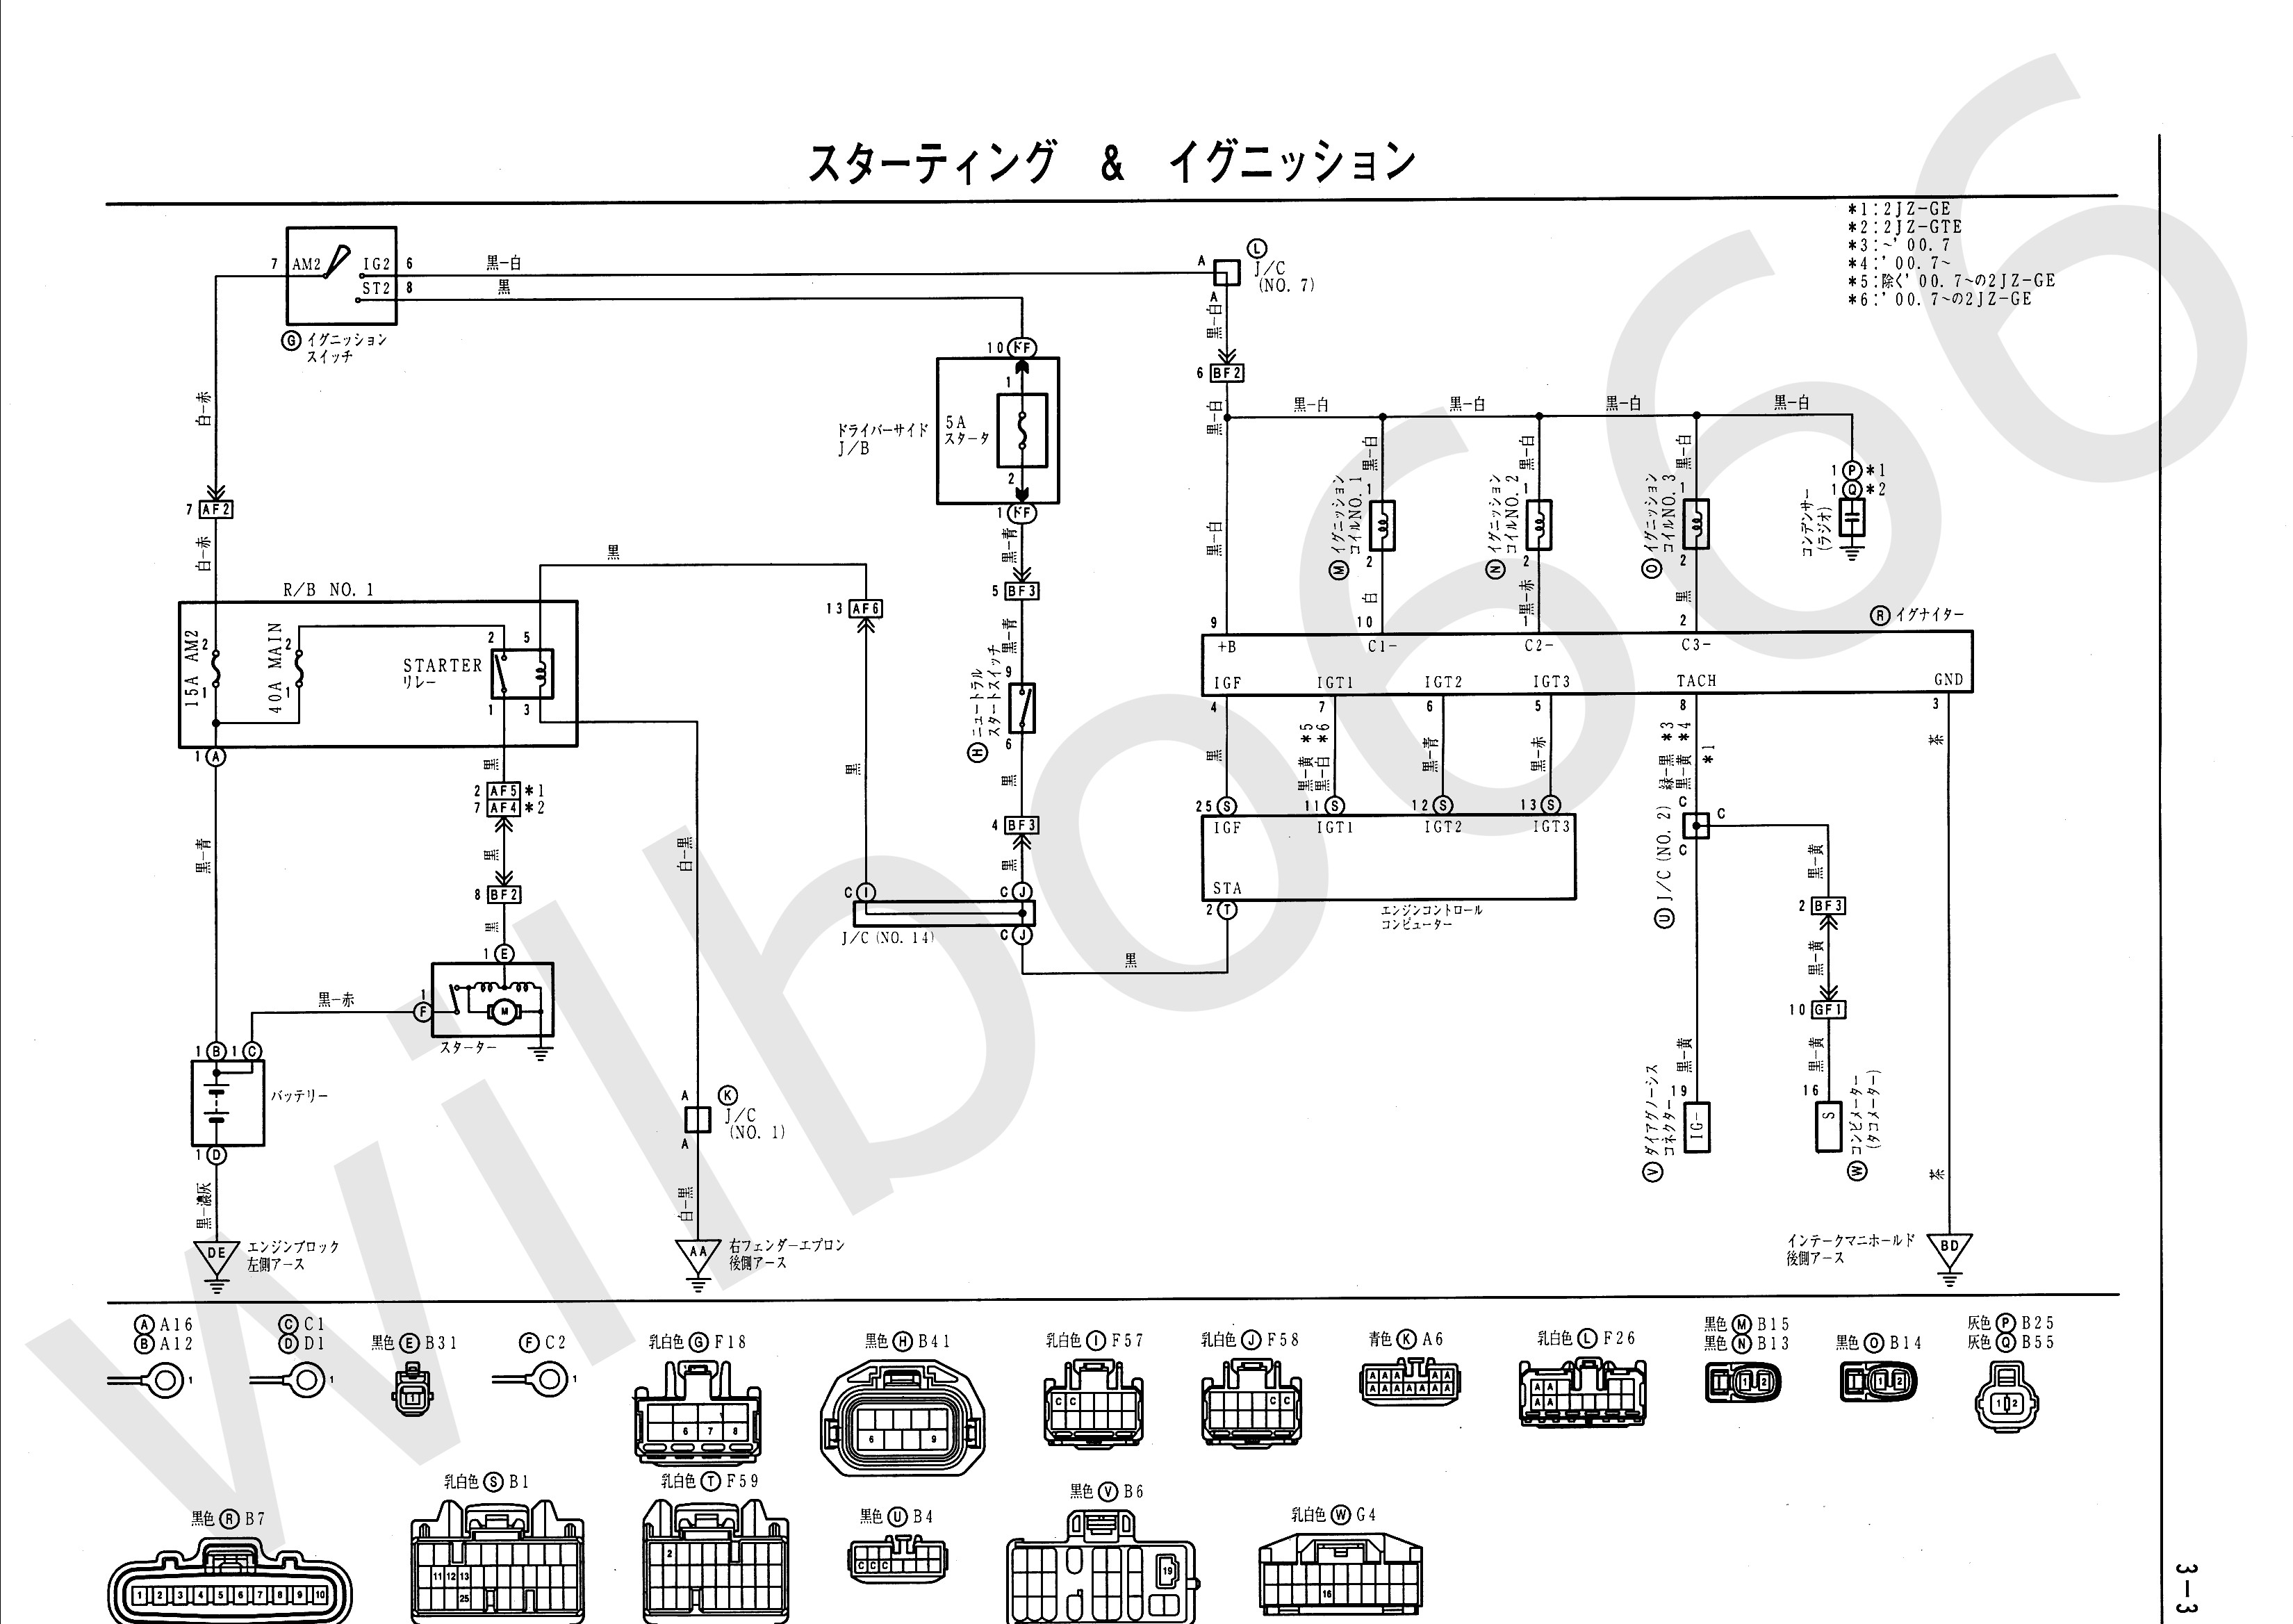 Wiring Diagram Switch S1 Wilbo666 2jz Gte Vvti Jzs161 Aristo Engine Wiring Of Wiring Diagram Switch S1